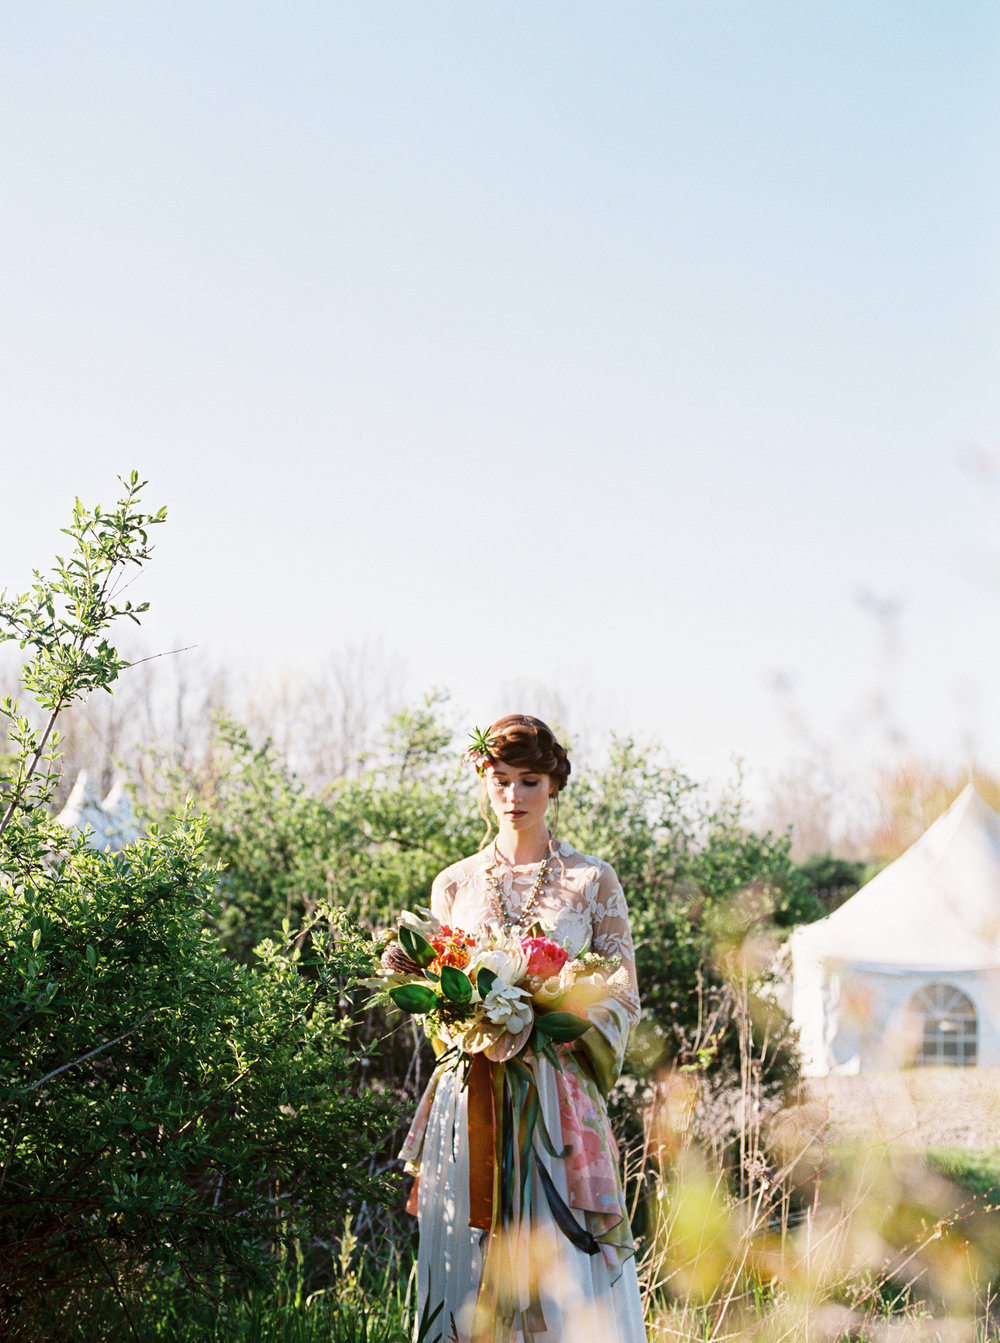 Alexandra-Elise-Photography-Ali-Reed-Film-Wedding-Photographer-Ithaca-New-York-Firelight-Camps-049.jpg